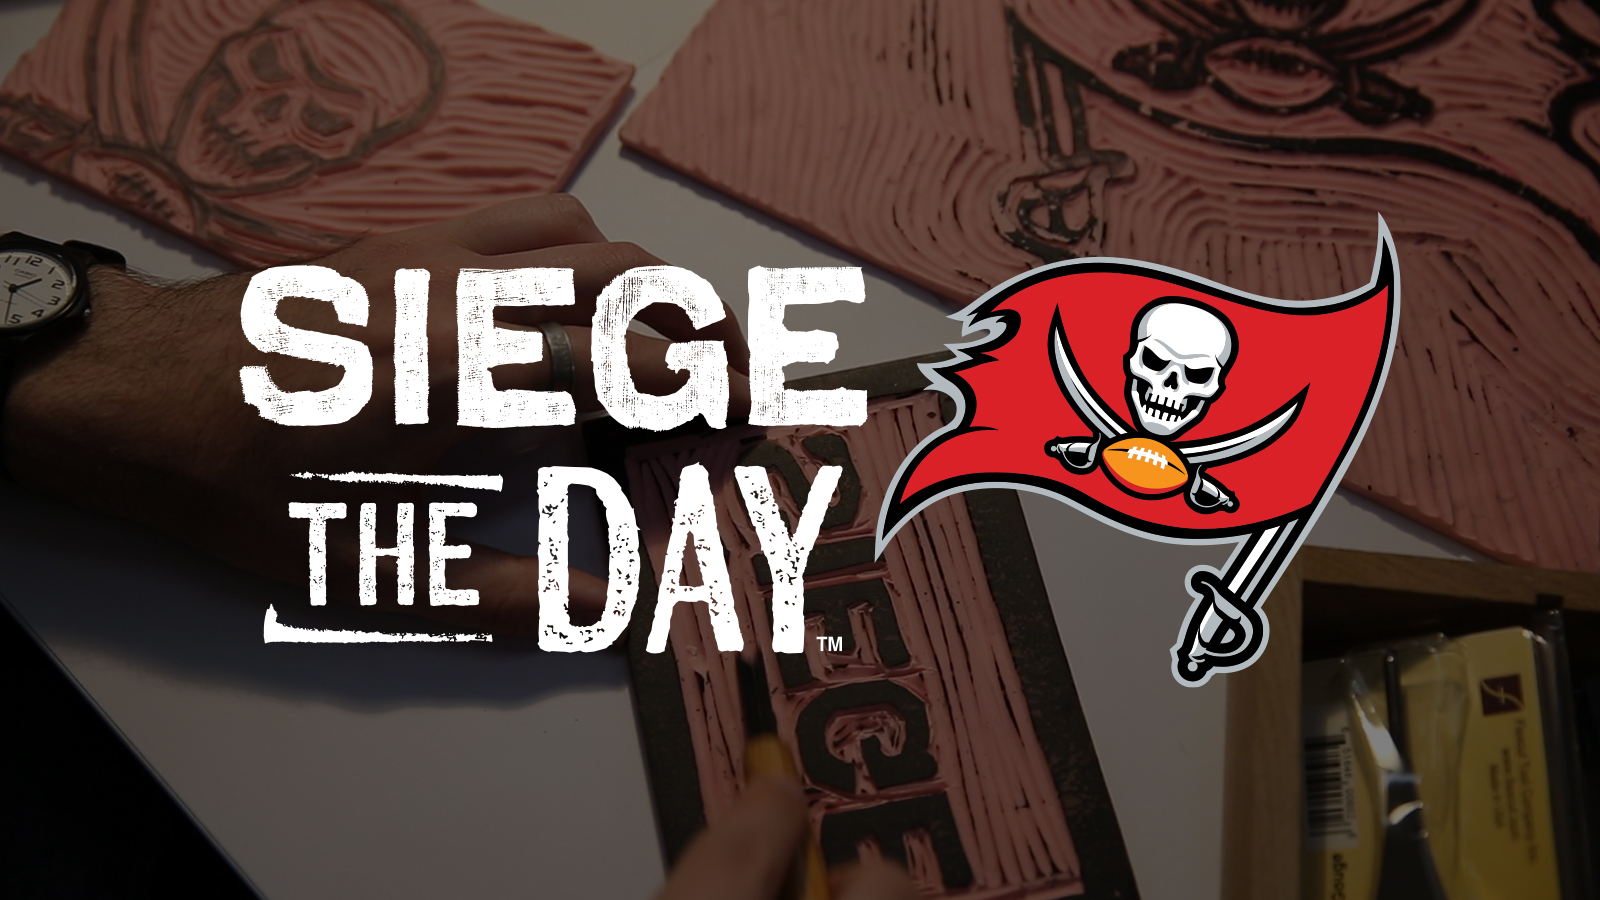 Tampa Bay Buccaneers - Siege the Day